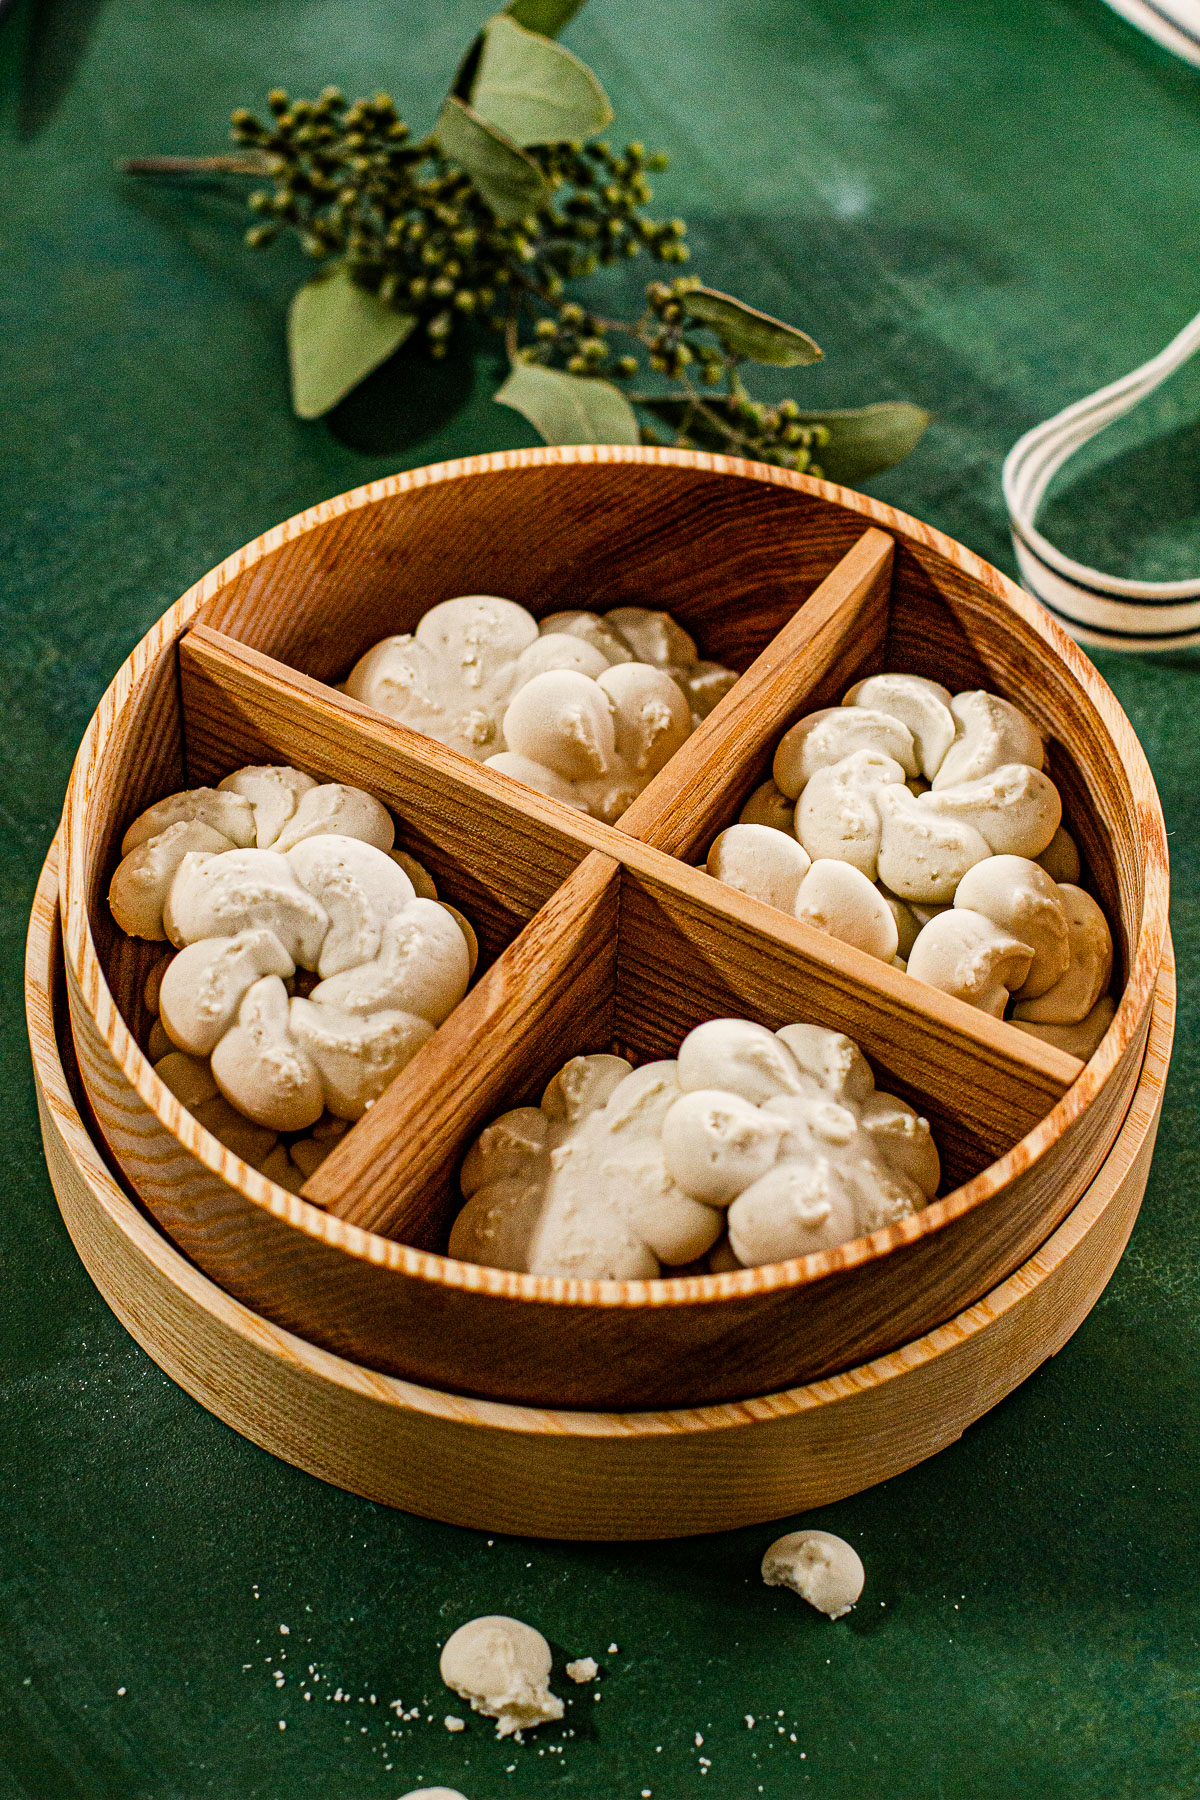 Uraro (Arrowroot) Cookies In a wooden cookie box on a green backdrop.